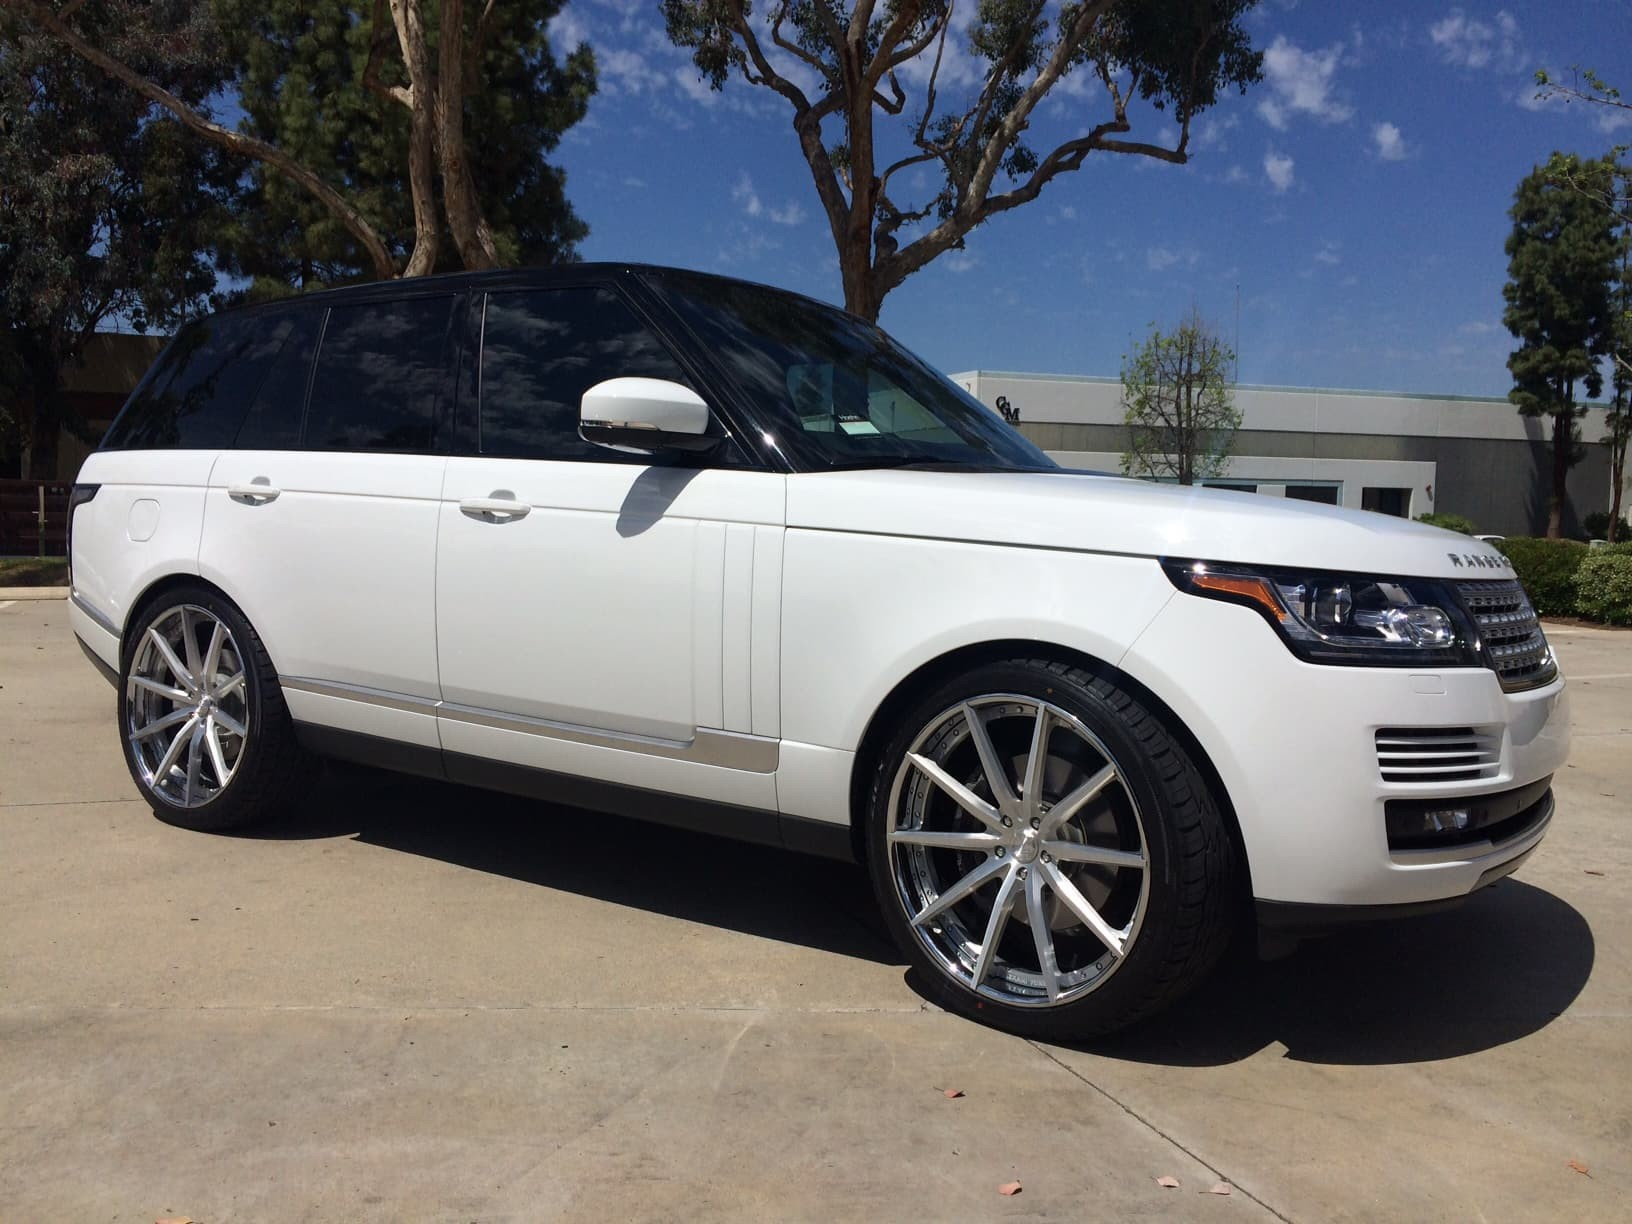 Custom LZ-108 on the 2013 Range Rover.